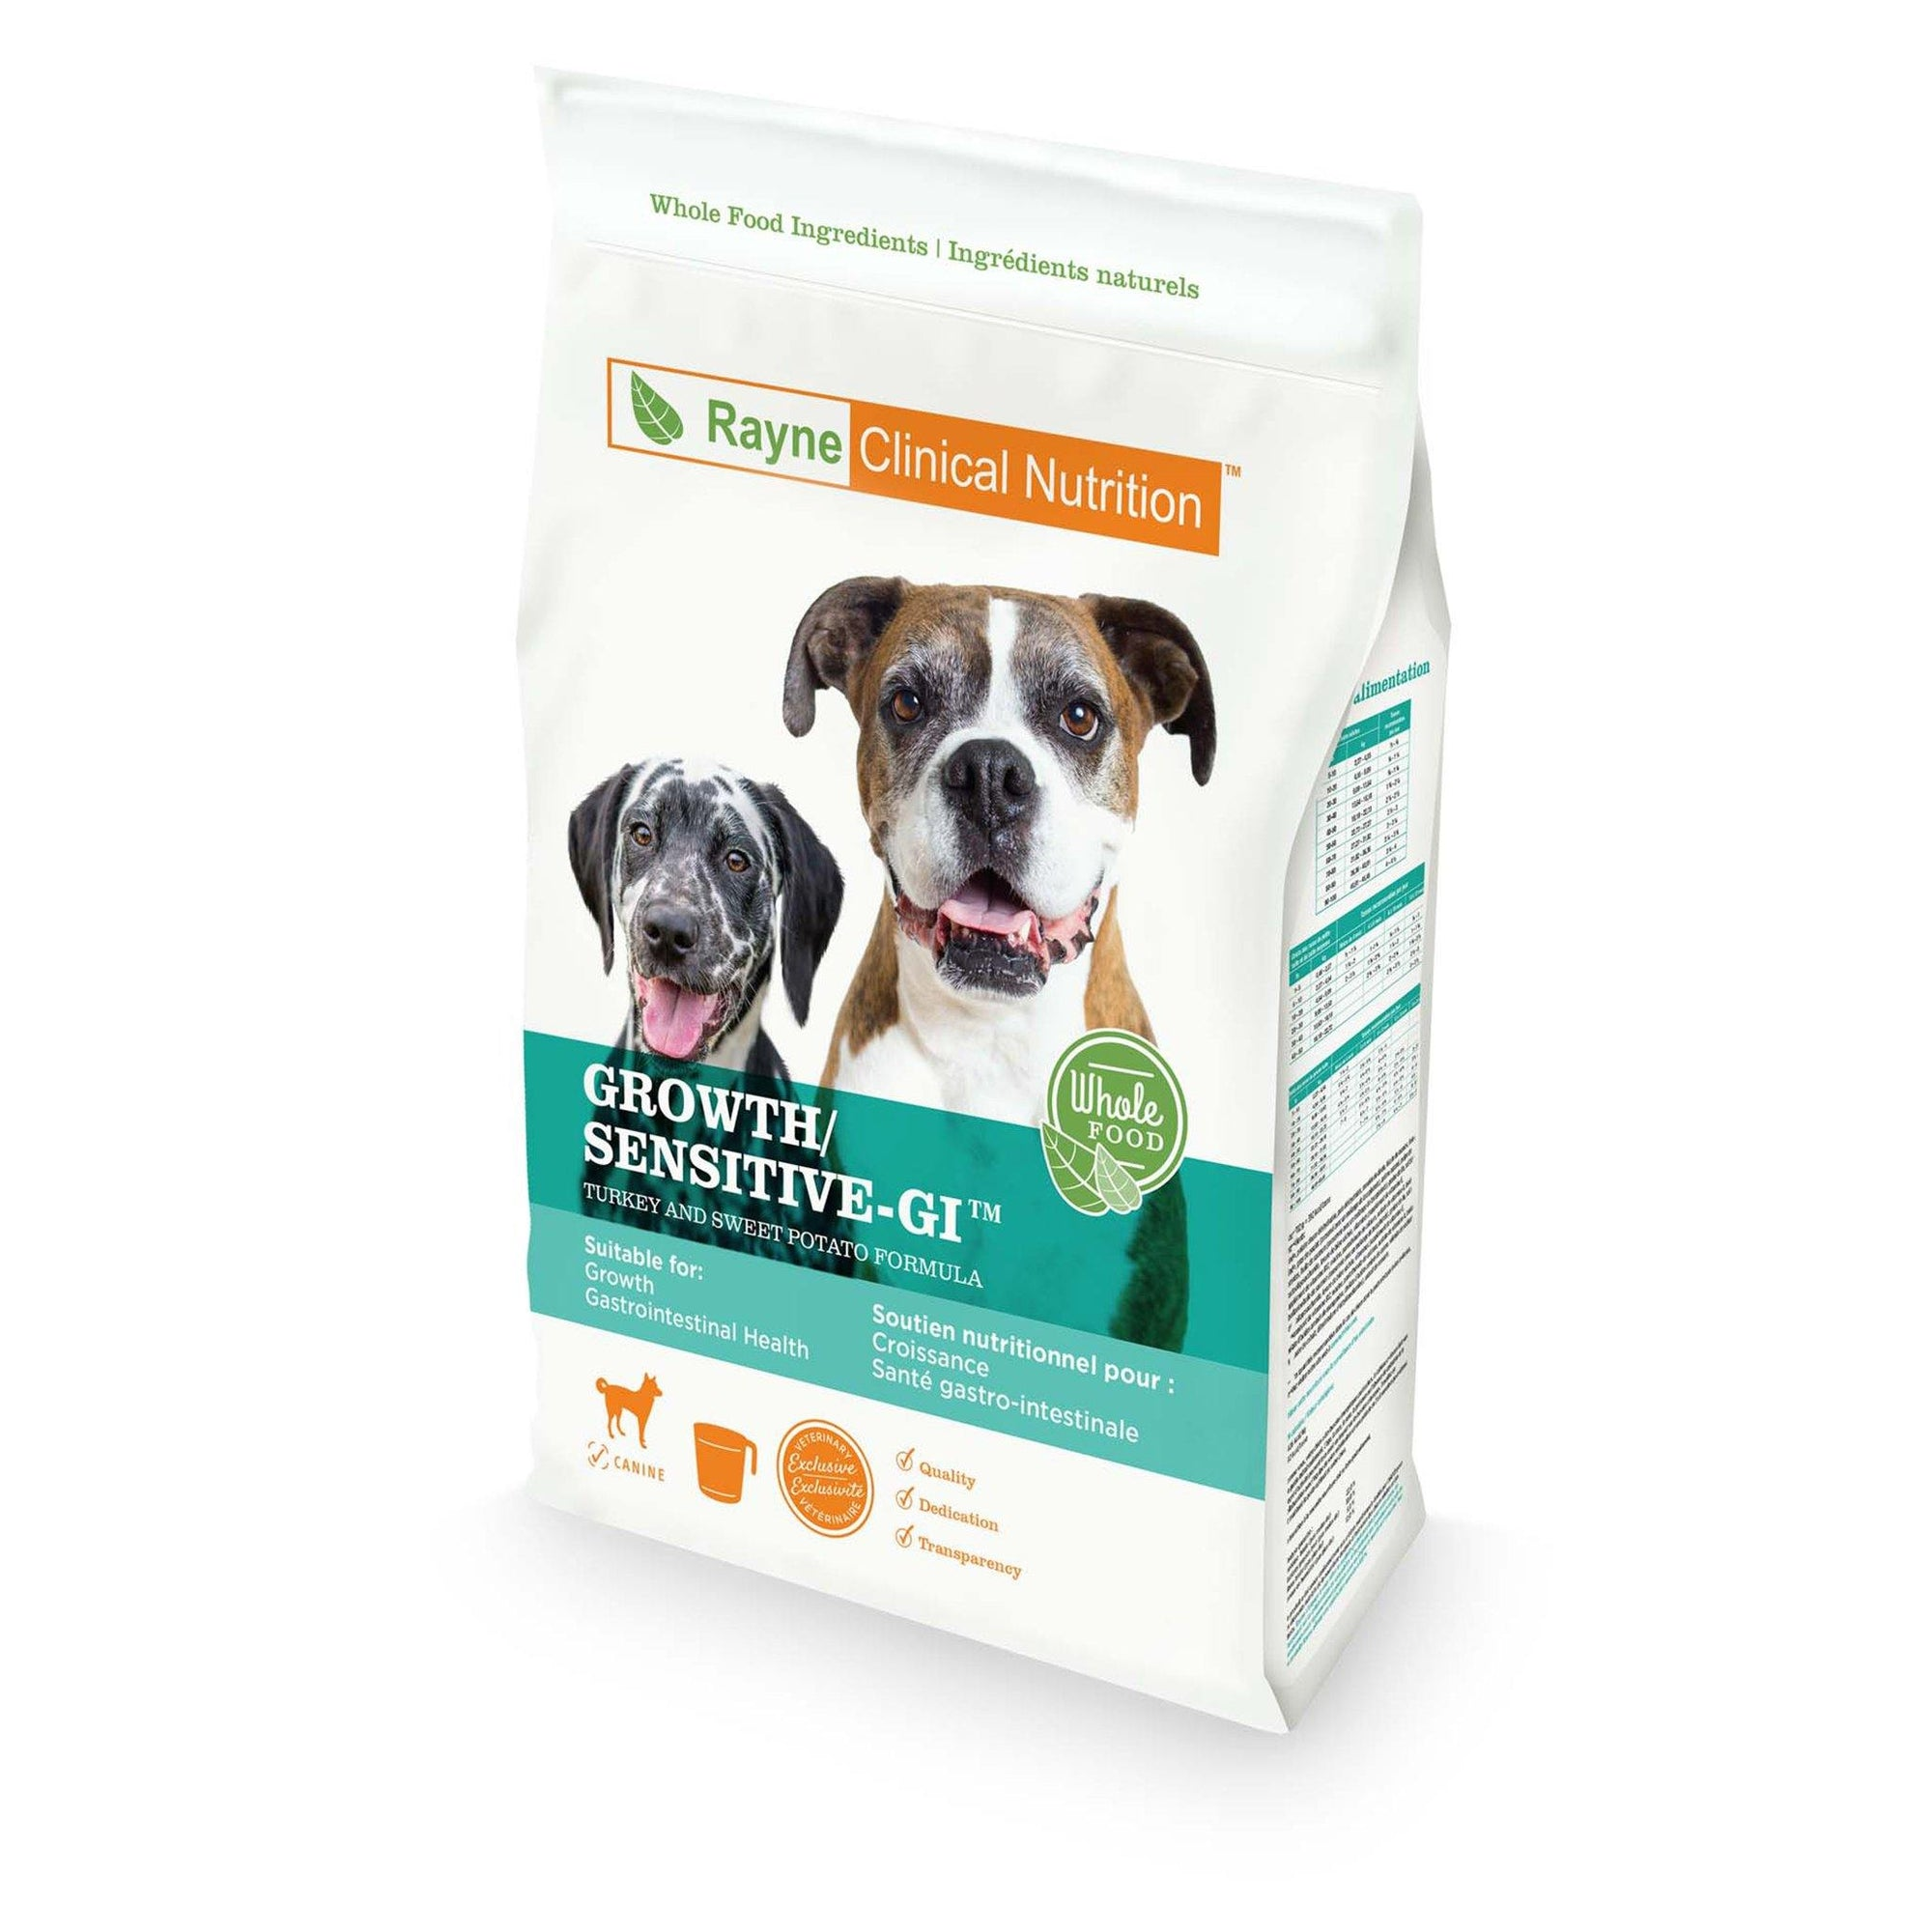 Growth/Sensitive-GI Canine Bag